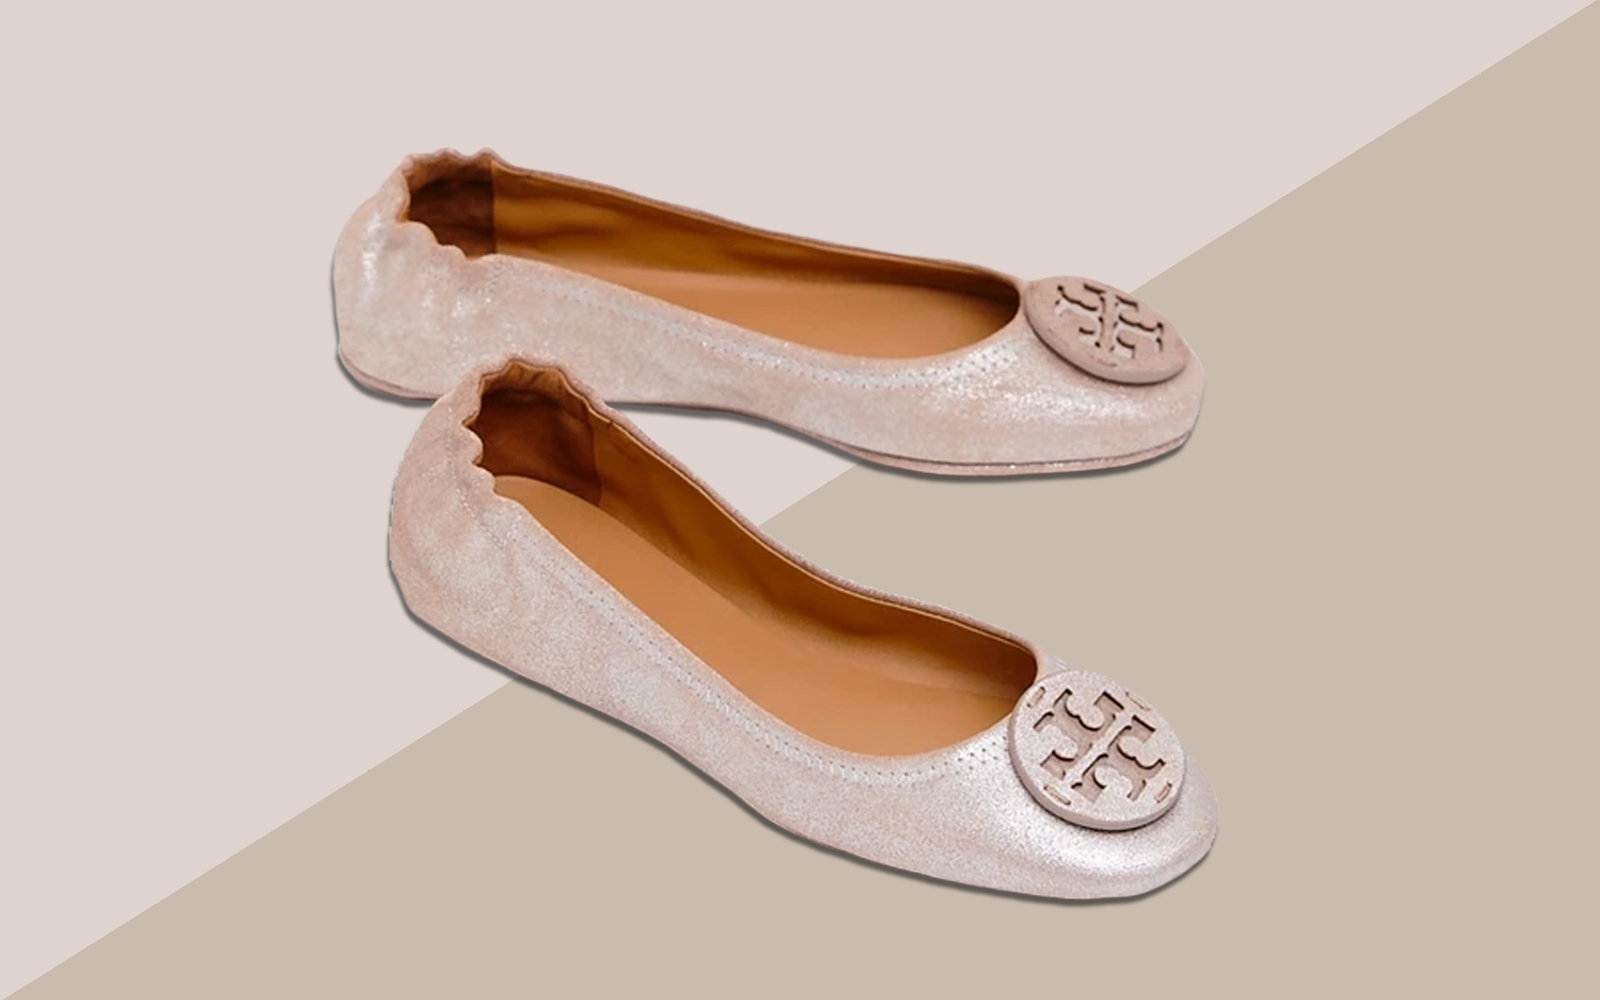 Tory Burch's Best-selling Foldable Travel Flats Are on Sale Right Now